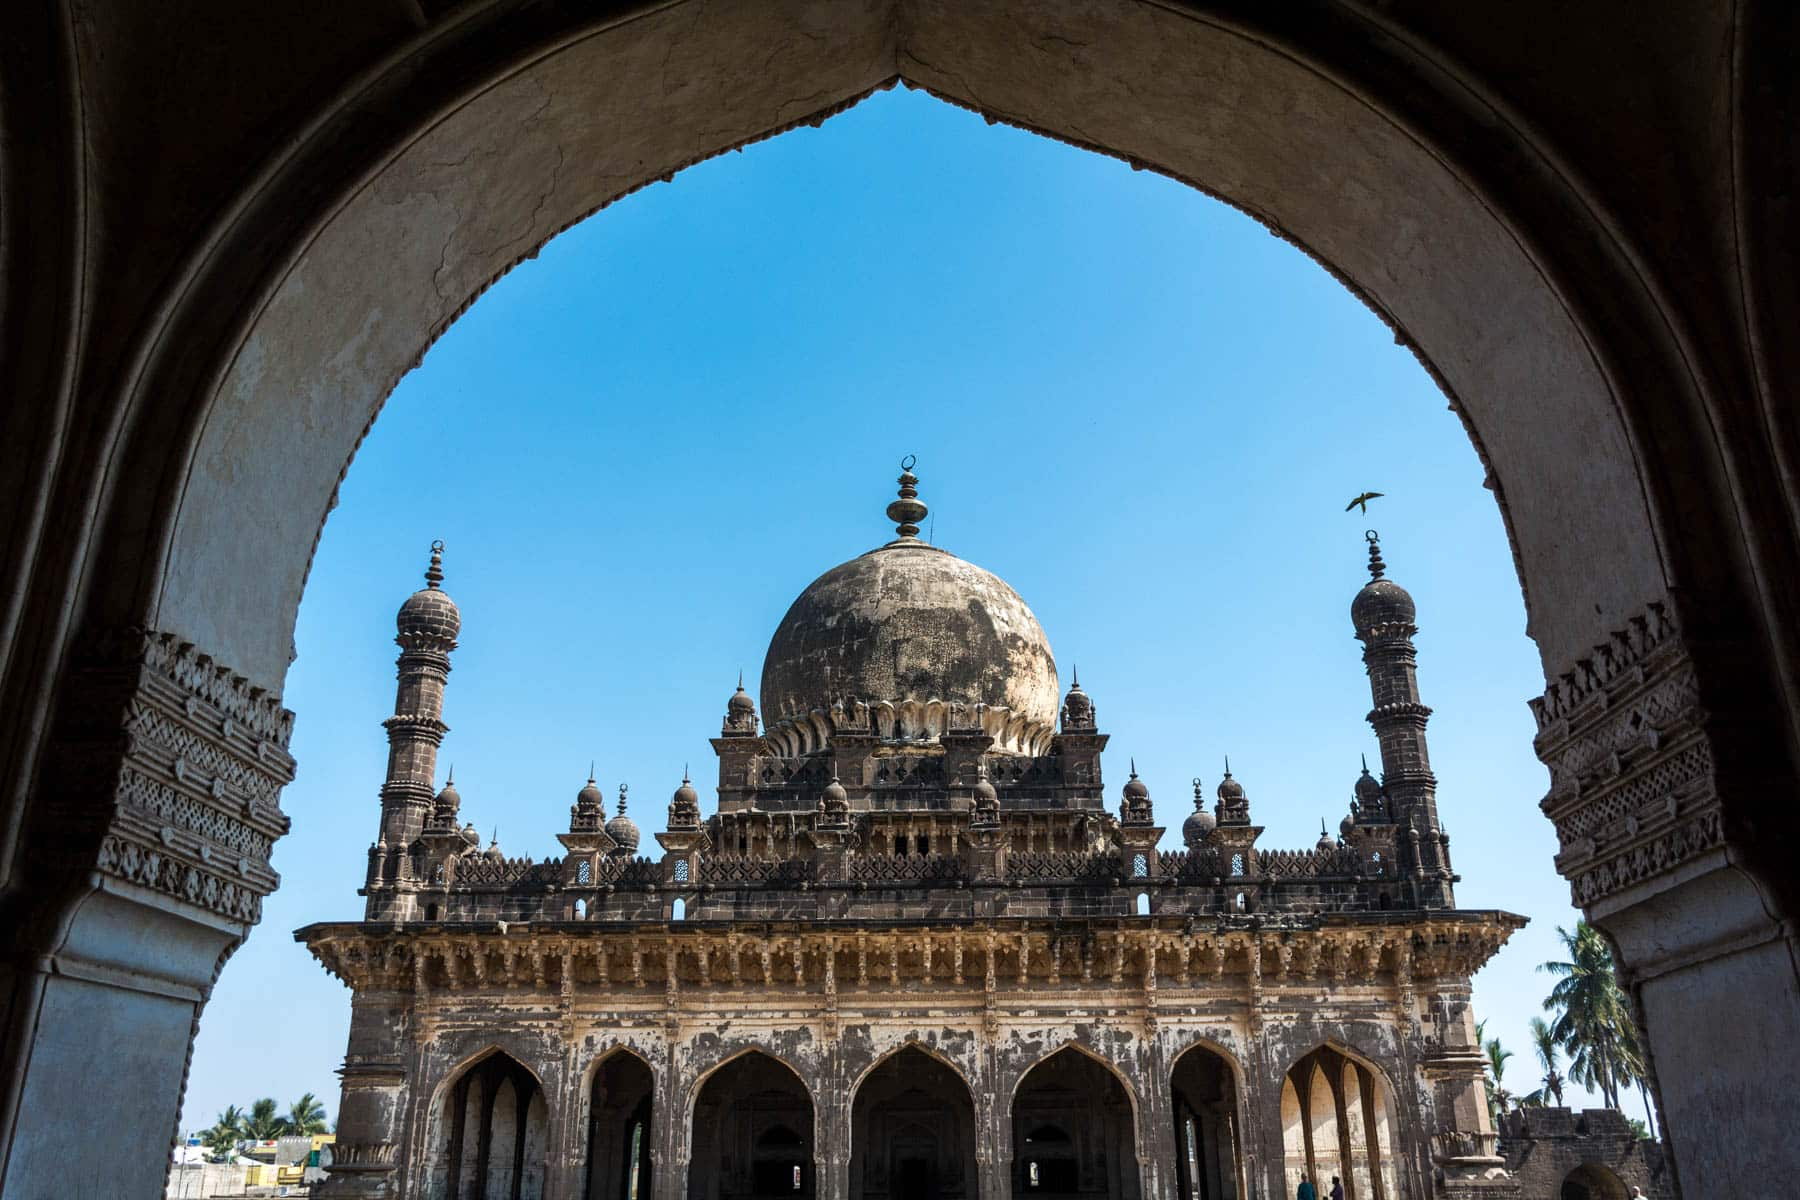 Best destinations off the beaten track in India - Ibrahim Rauza mausoleum through an archway in Bijapur, Karnataka - Lost With Purpose travel blog